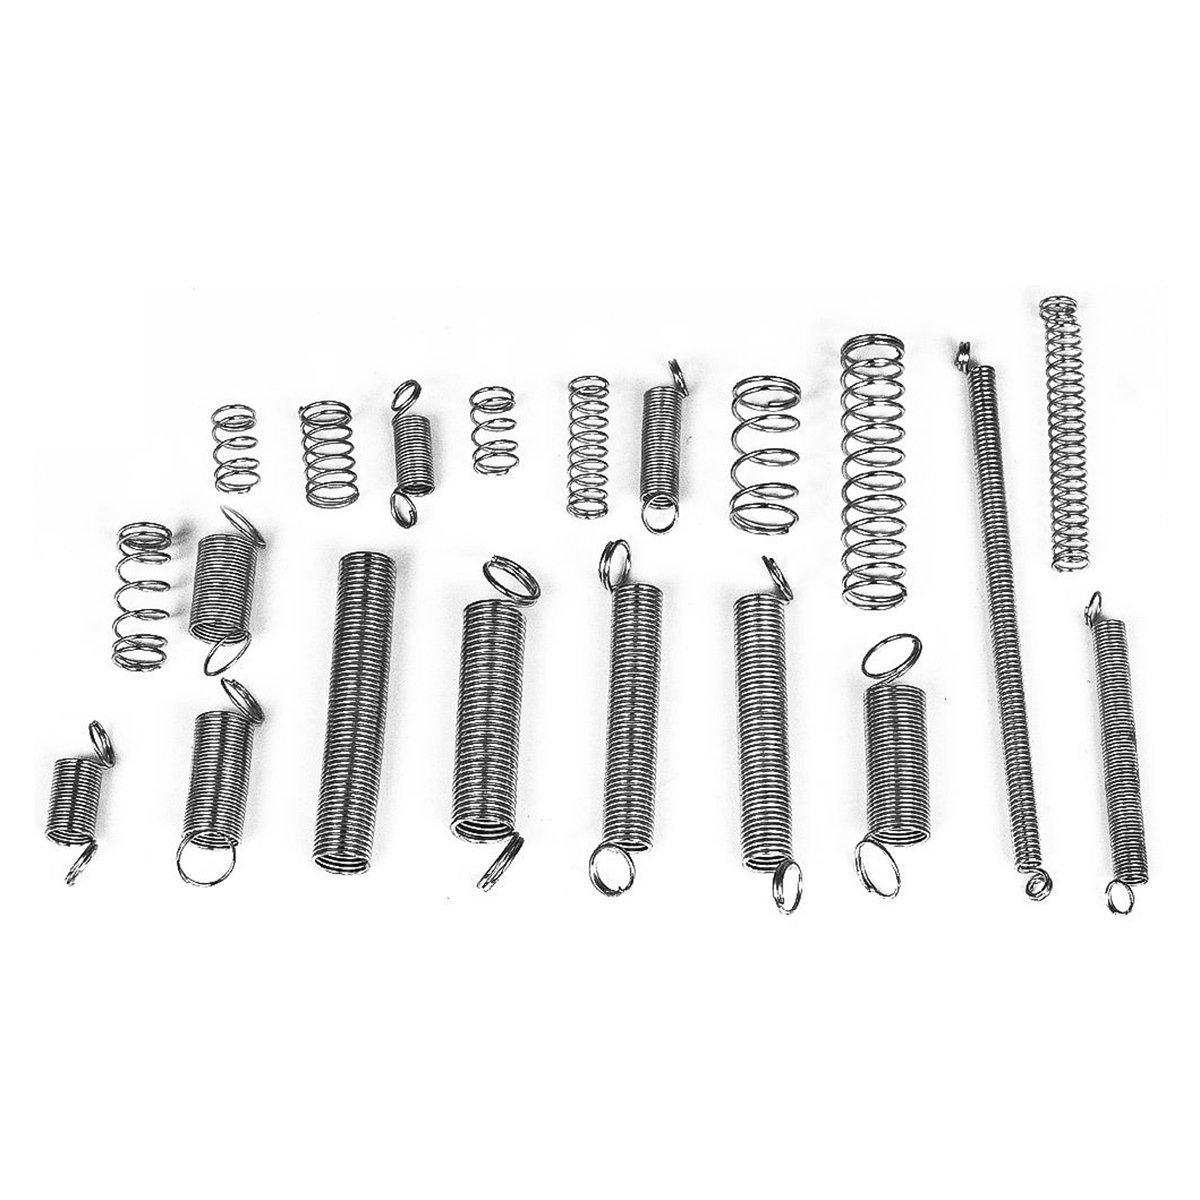 UEETEK 200PCS Spring Rate Assortment Spiral Galvanized Spring Set Extension Spring